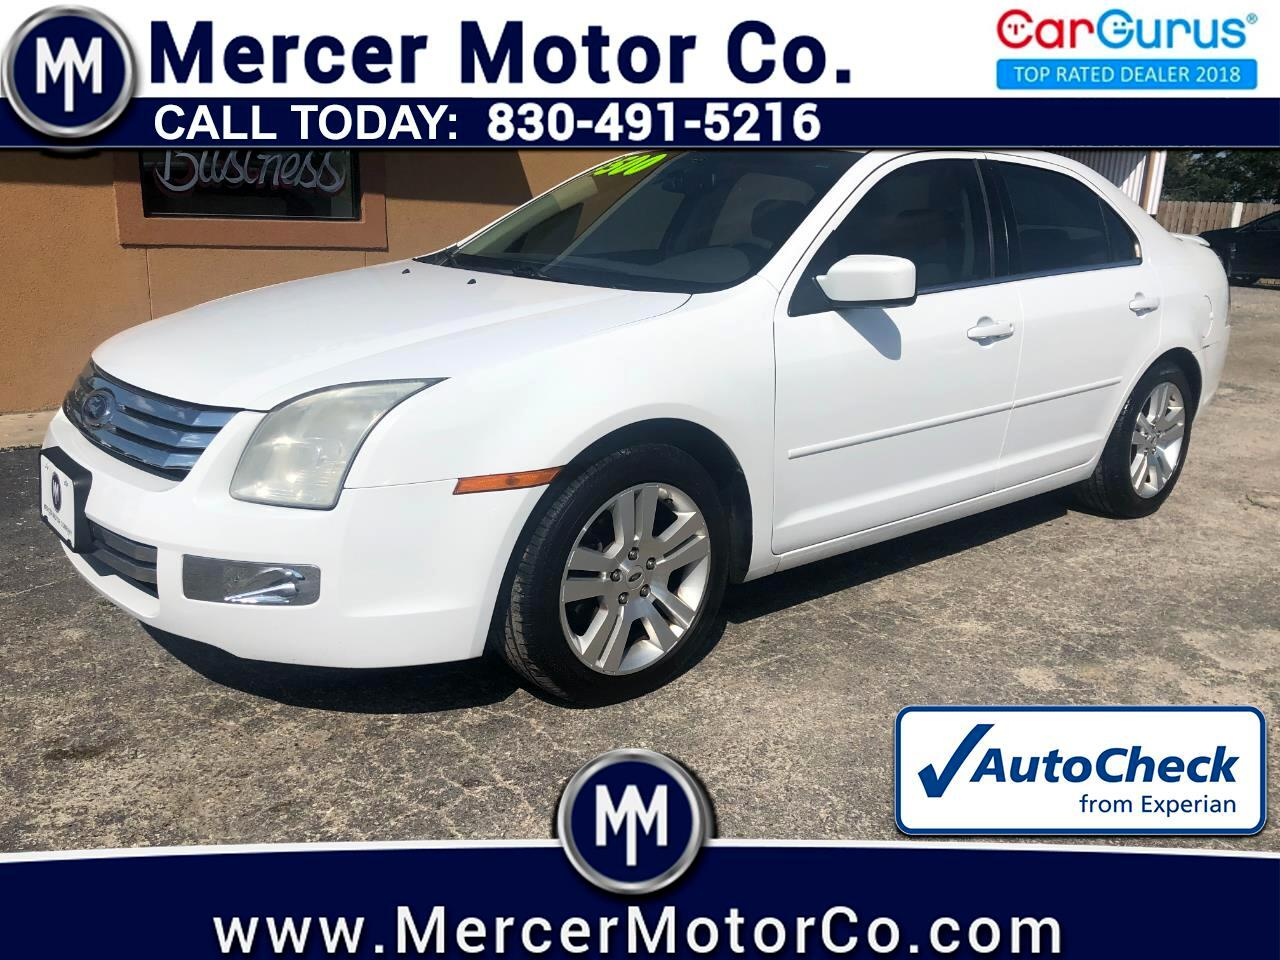 Ford Fusion 4dr Sdn V6 SEL AWD 2007